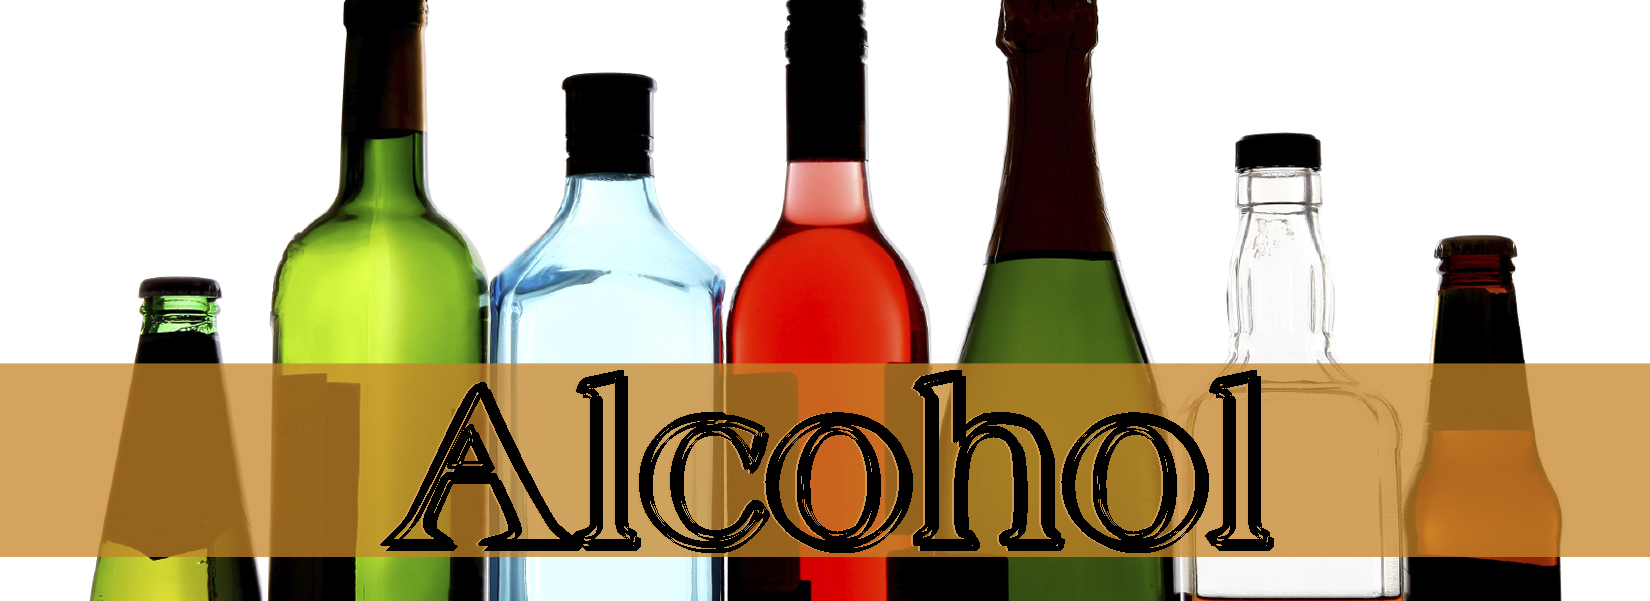 15 Things You Didn't Know About Alcohol